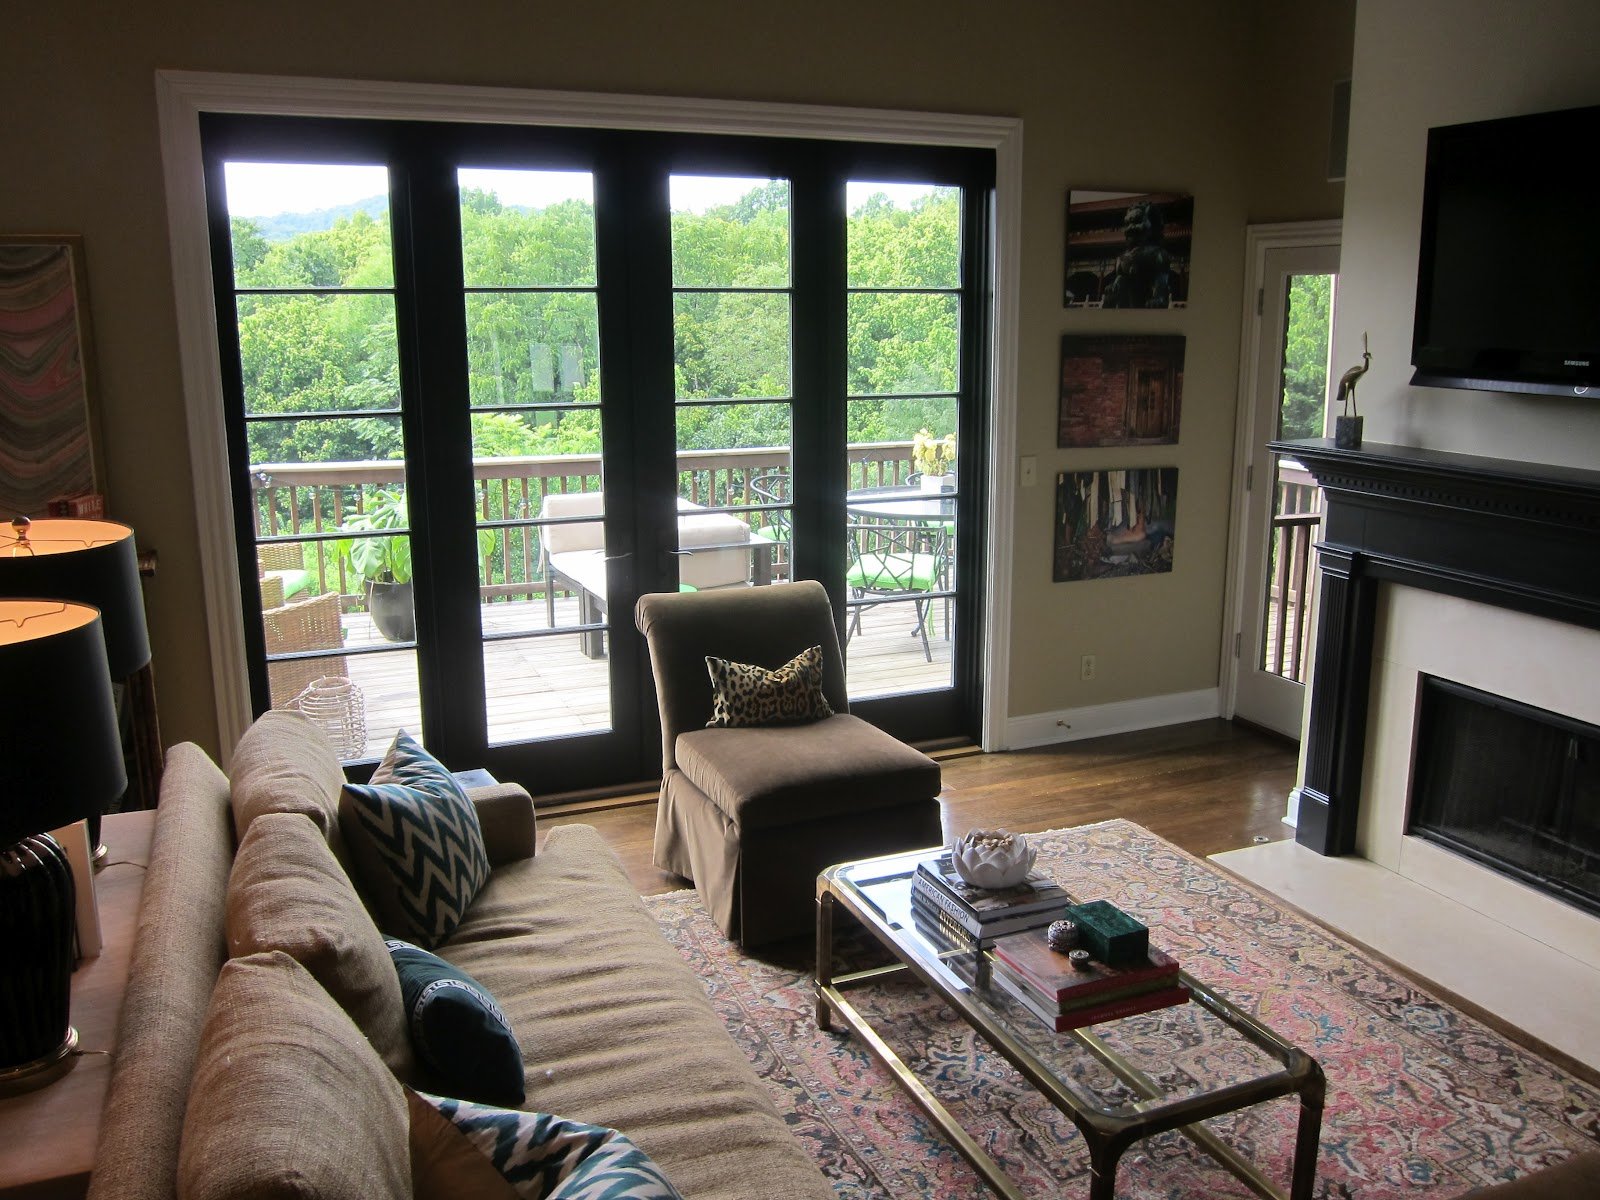 My interior life new doors as ive mentioned ad nauseum we finally got new french doors to replace our old sliding glass system i love them so much planetlyrics Image collections